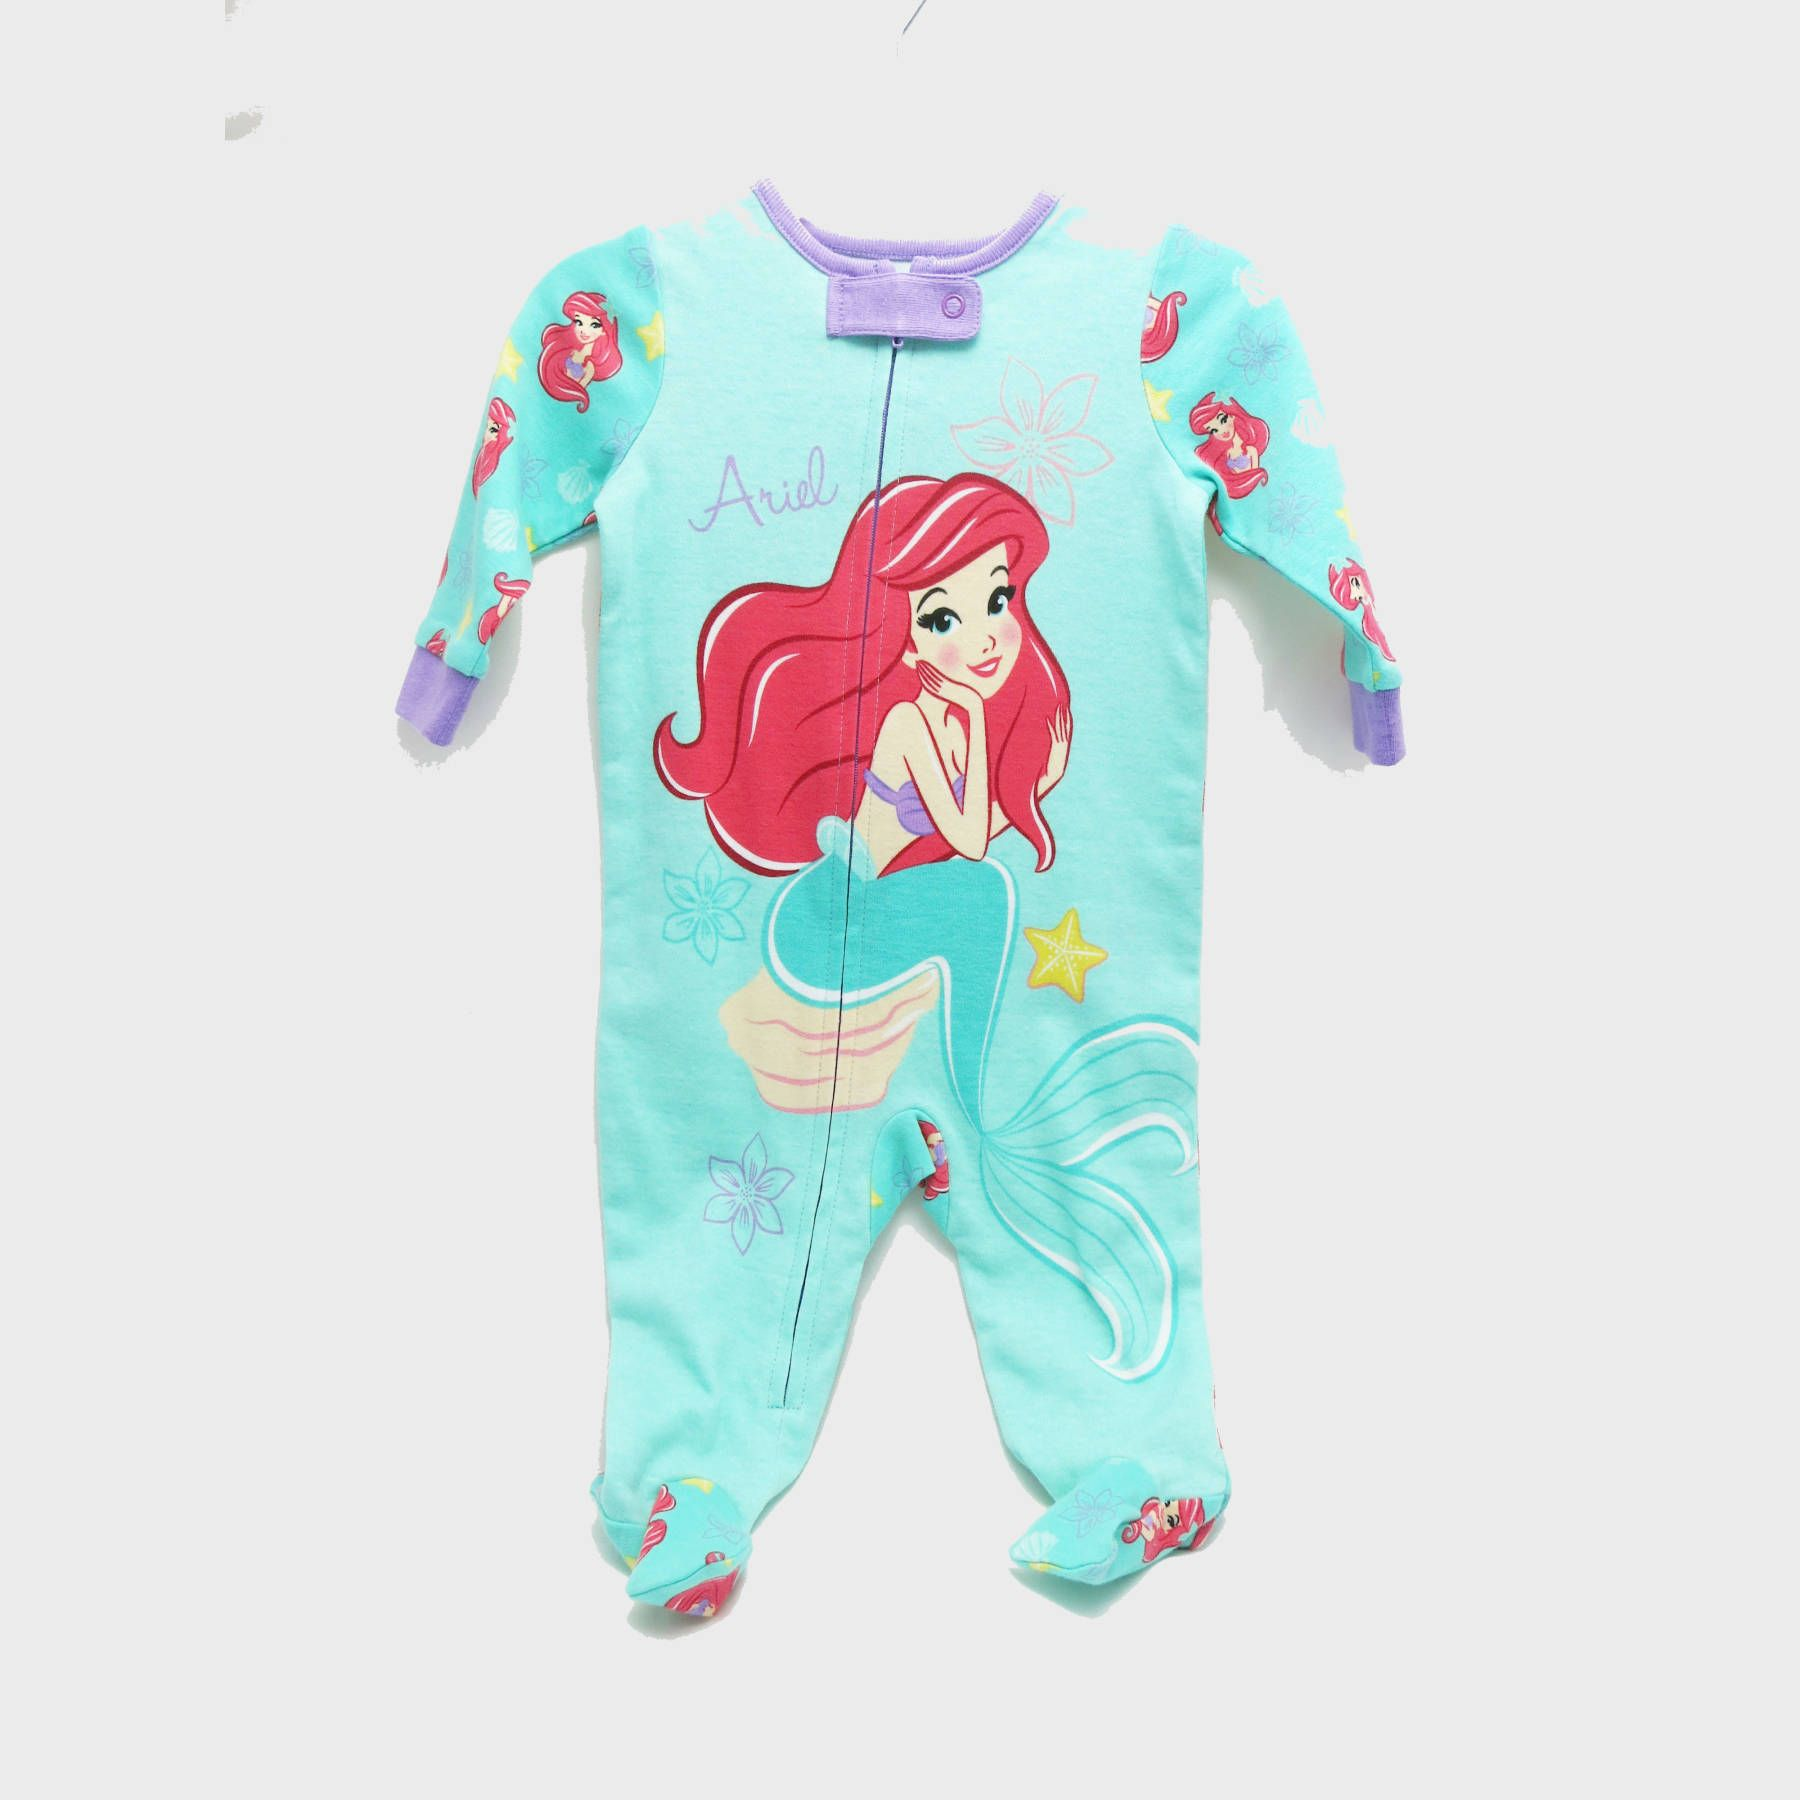 Product Description Disney minnie mouse 3 piece t-shirt with French terry hoodie and pant set.